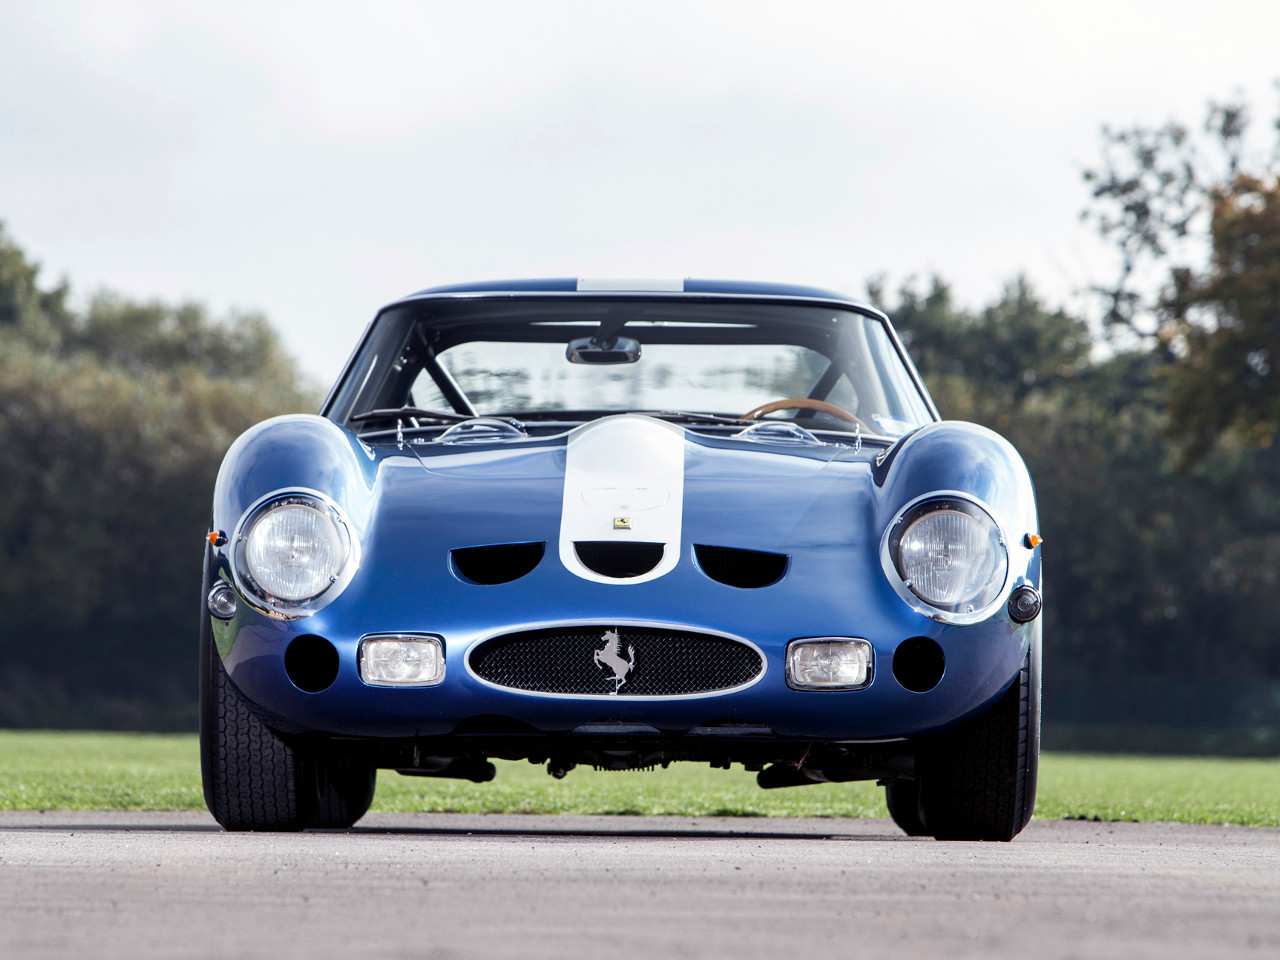 The Most Expensive Car In the World Is For Sale - autoevolution